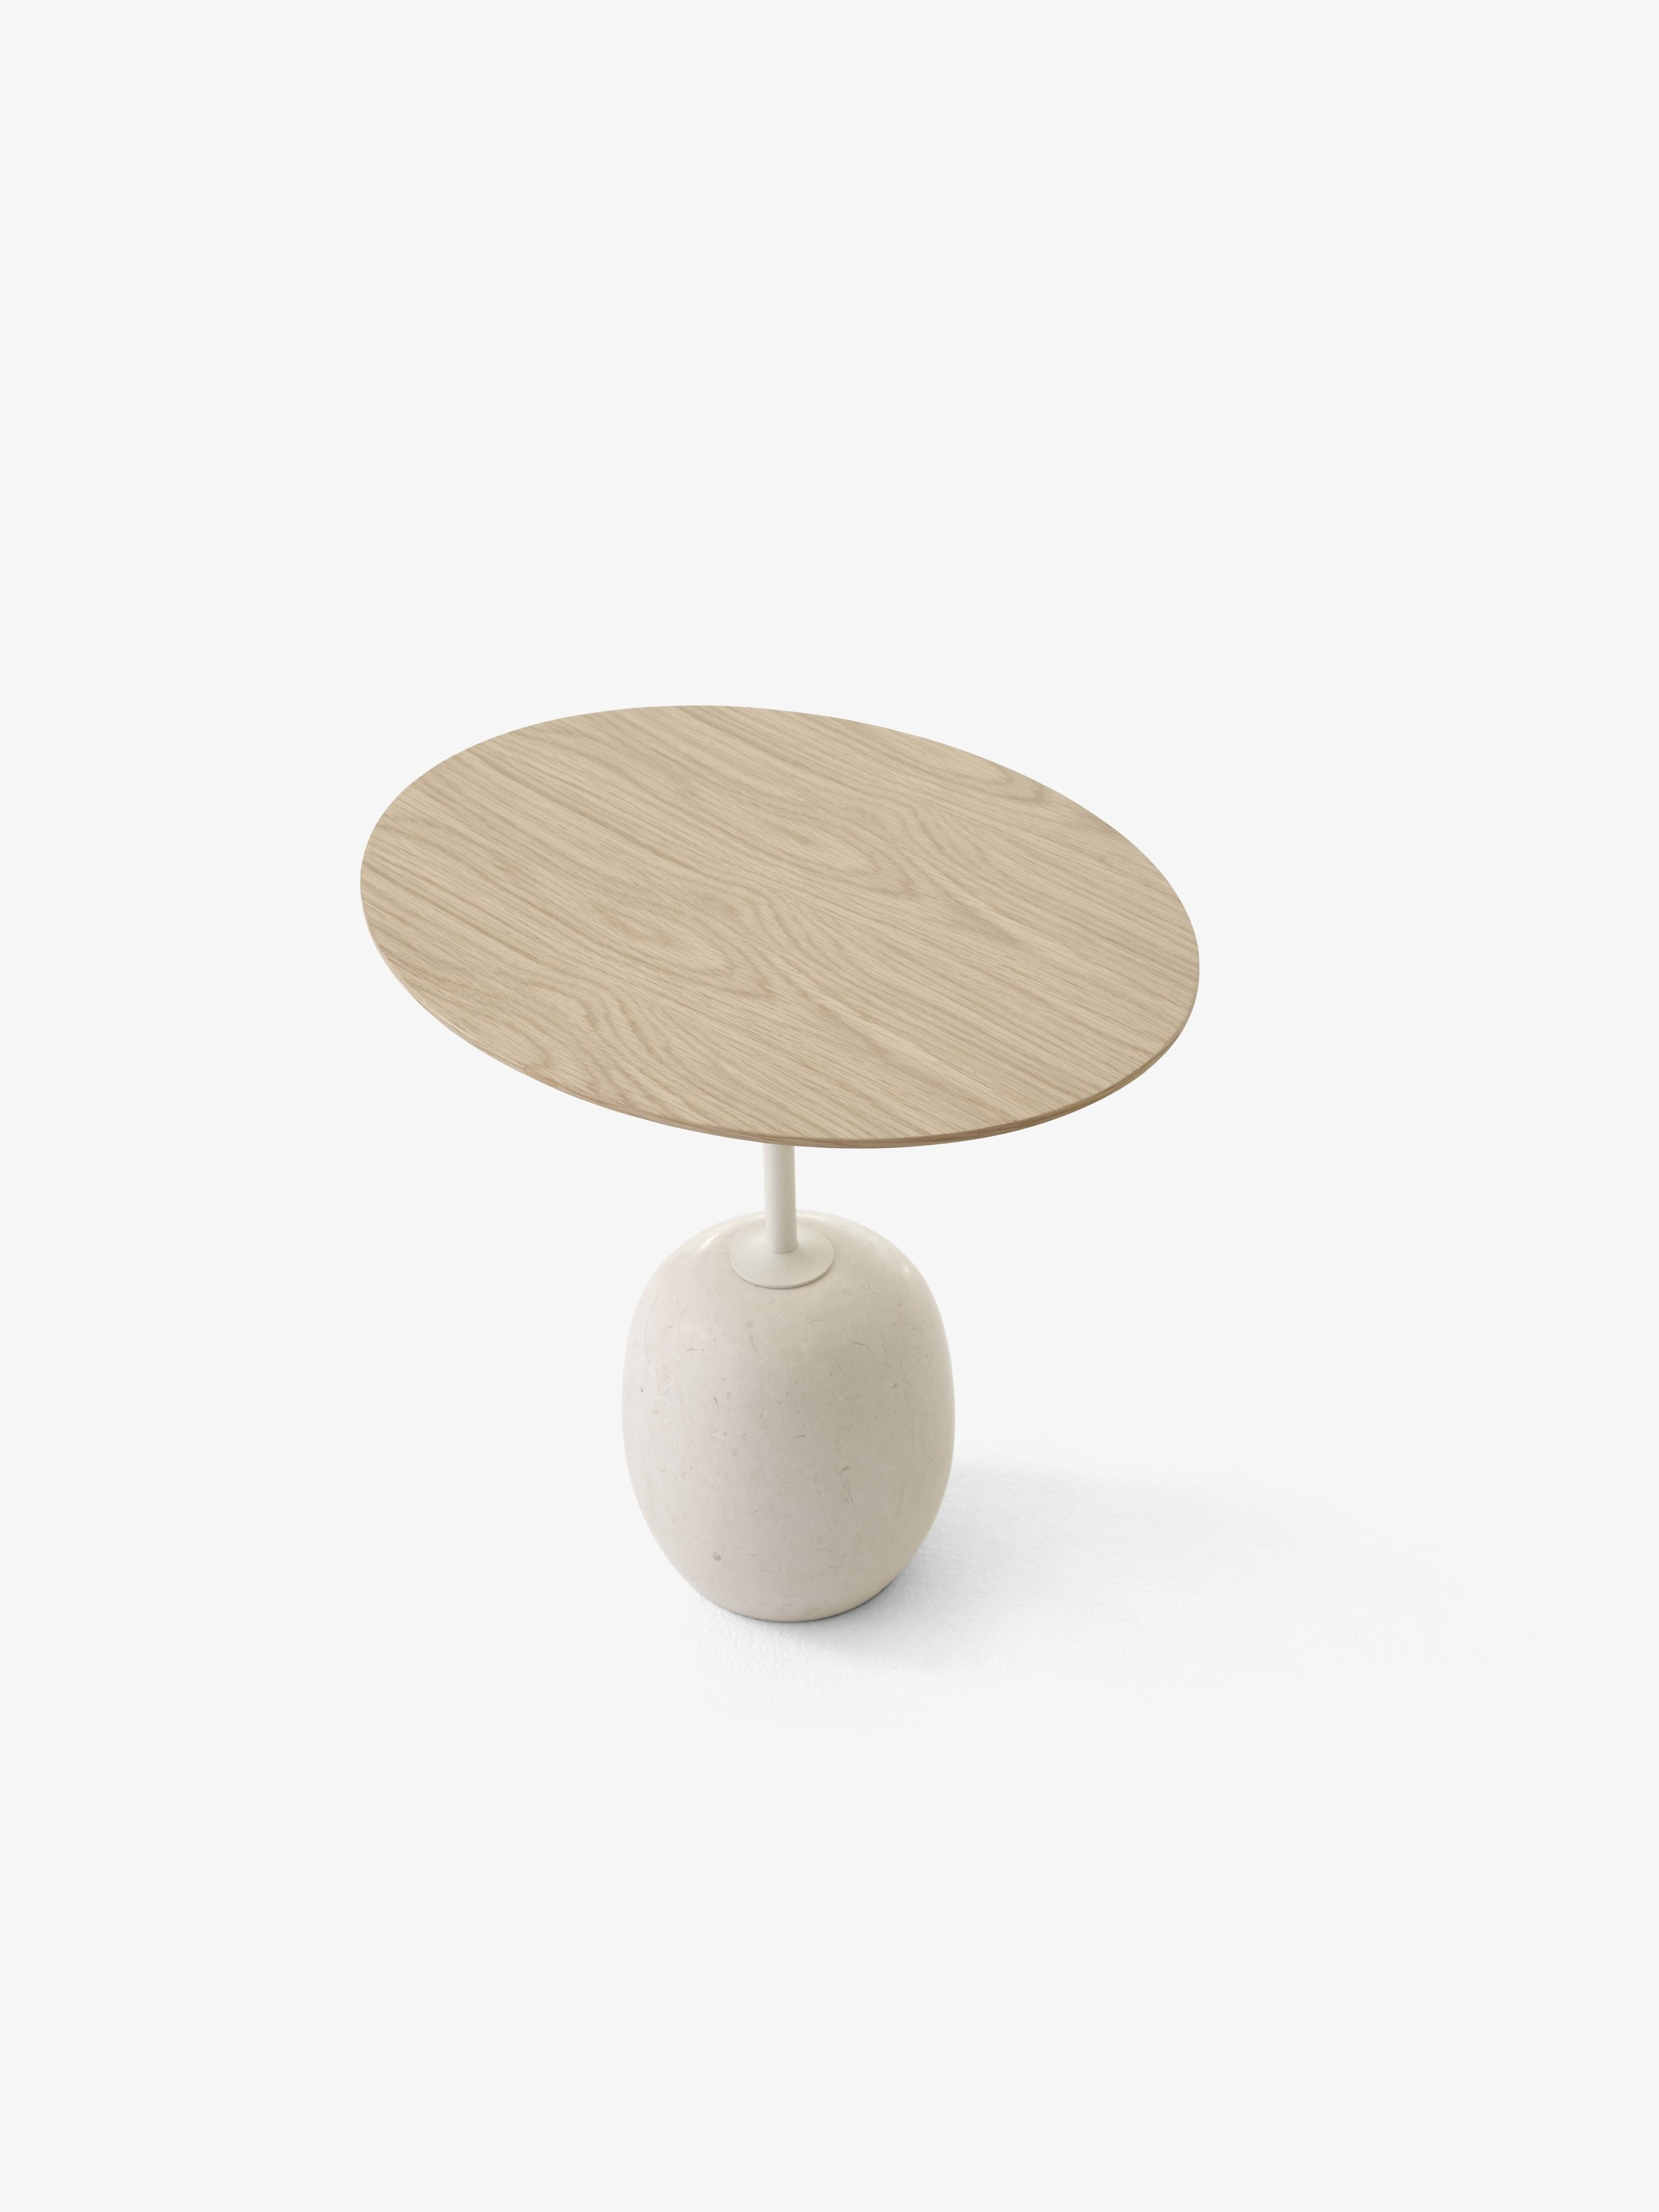 &Tradition Lato Table LN8 LN9 Oval Ivory White